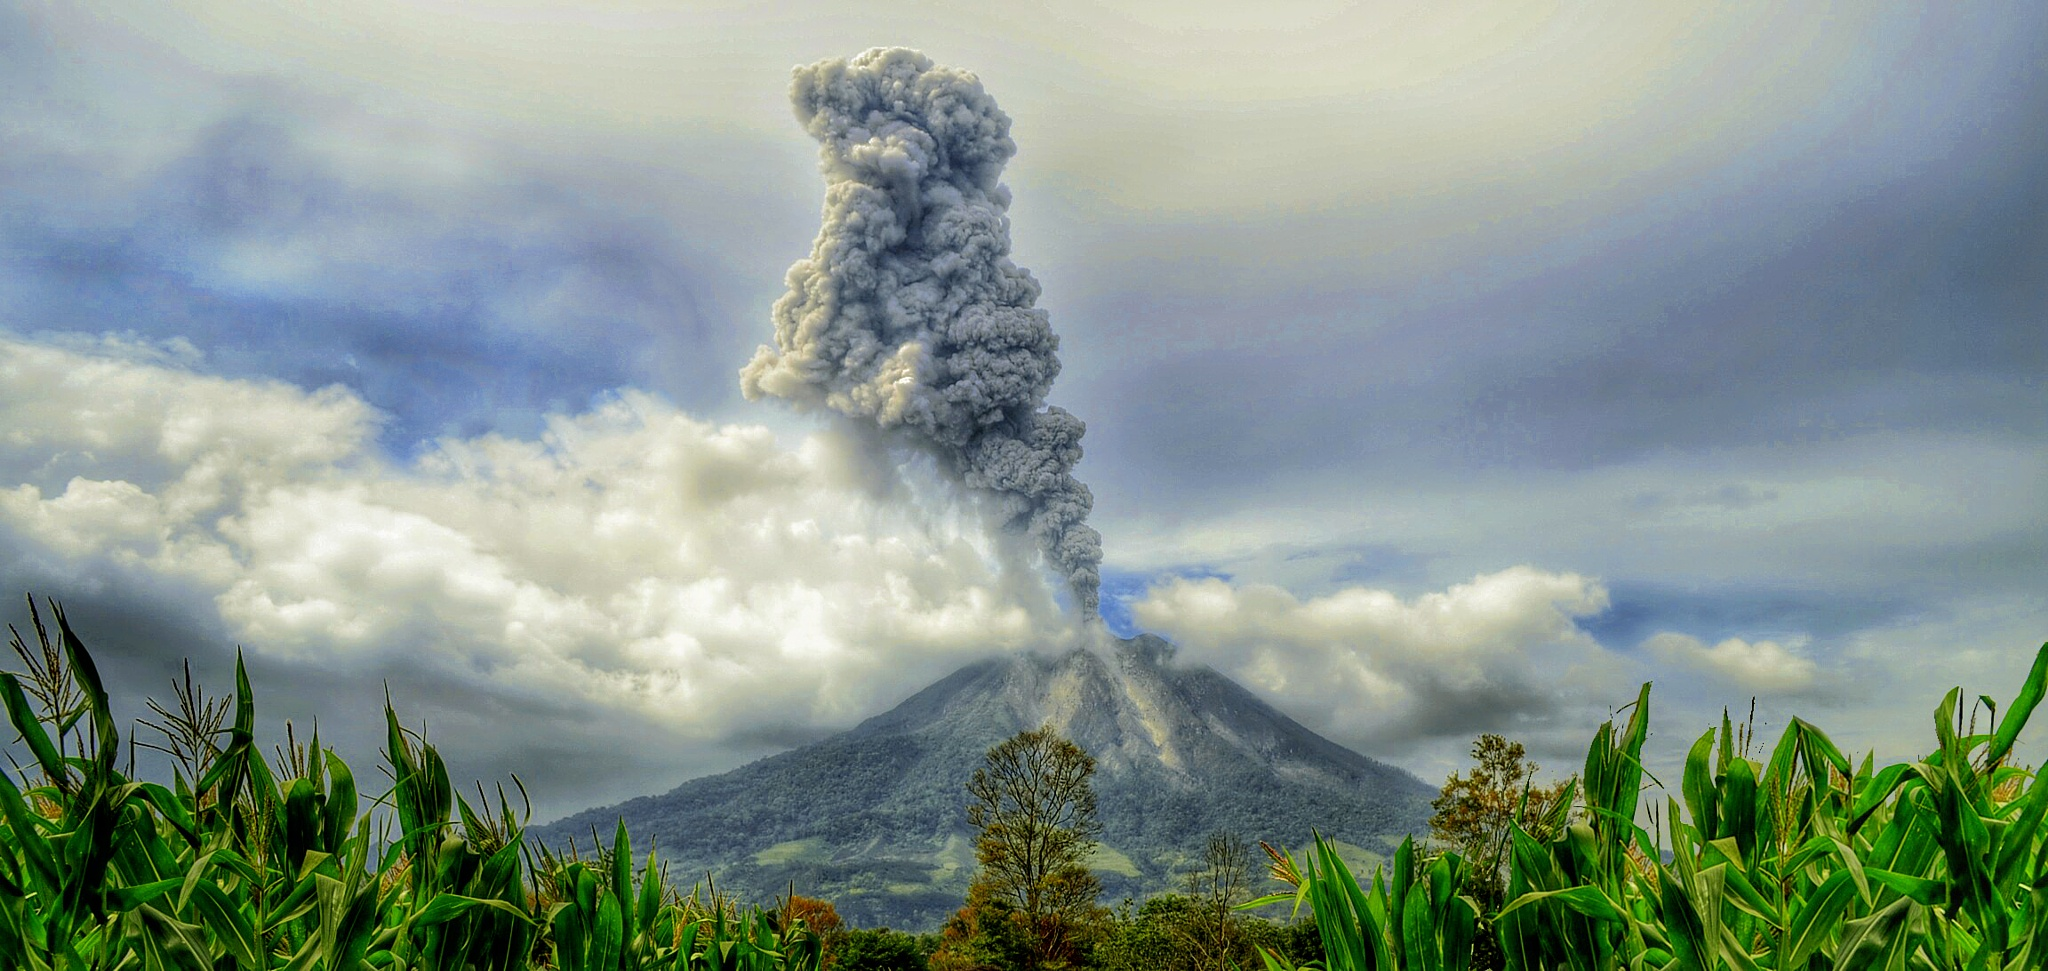 Sinabung Volcano by Kriswanto Ginting's